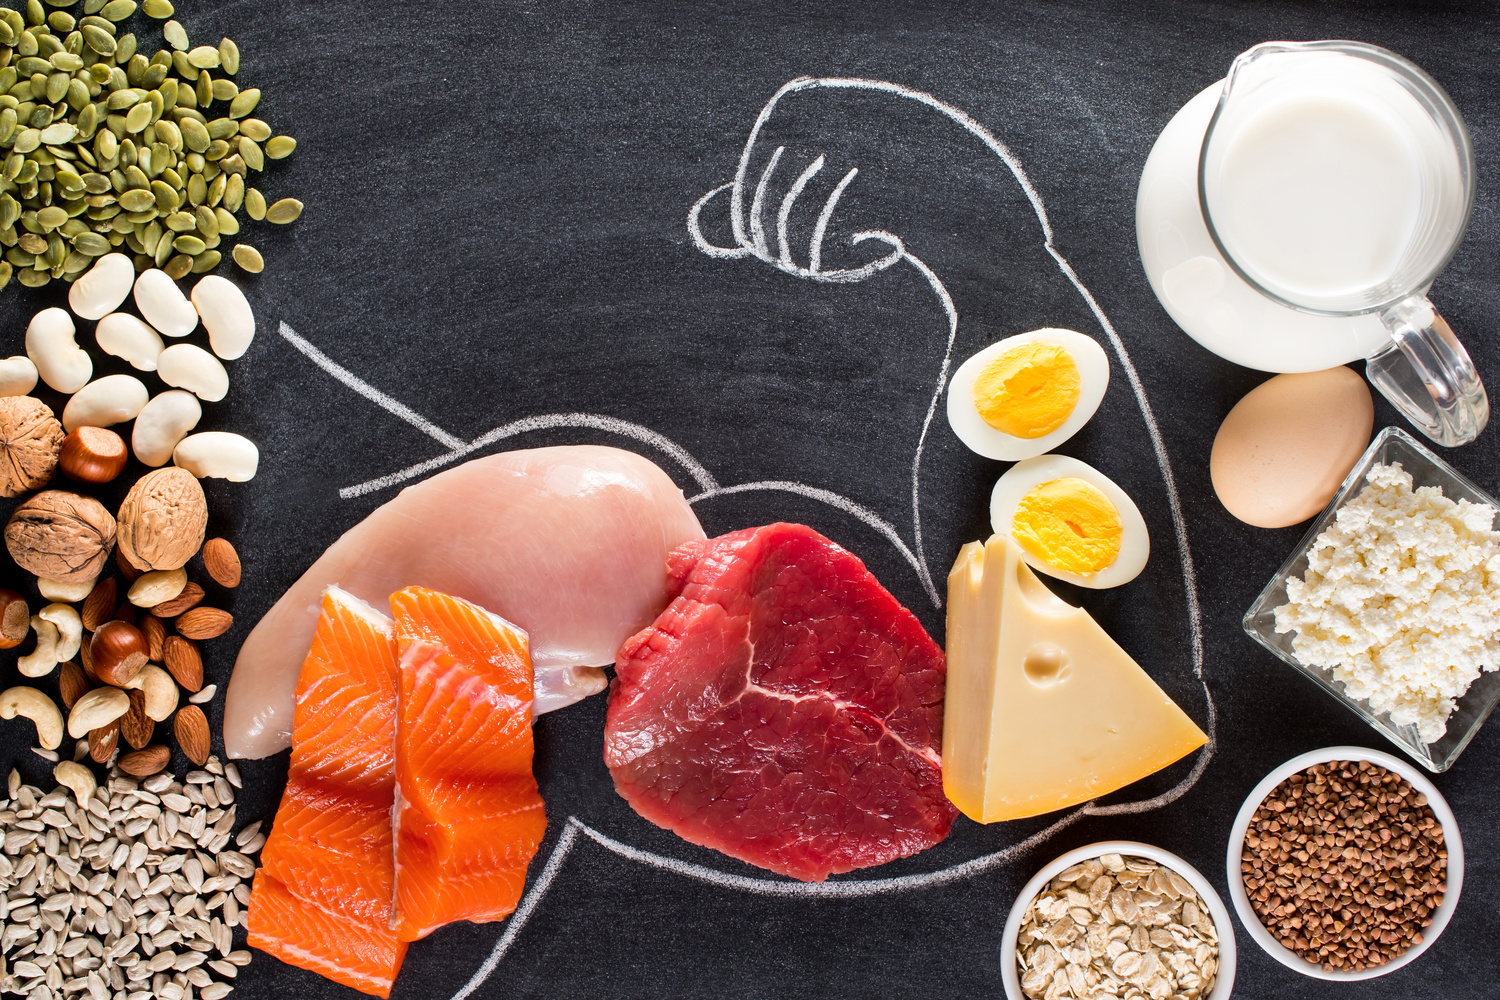 Well-planned diet may help you to get rid of the flab | Shutterstock